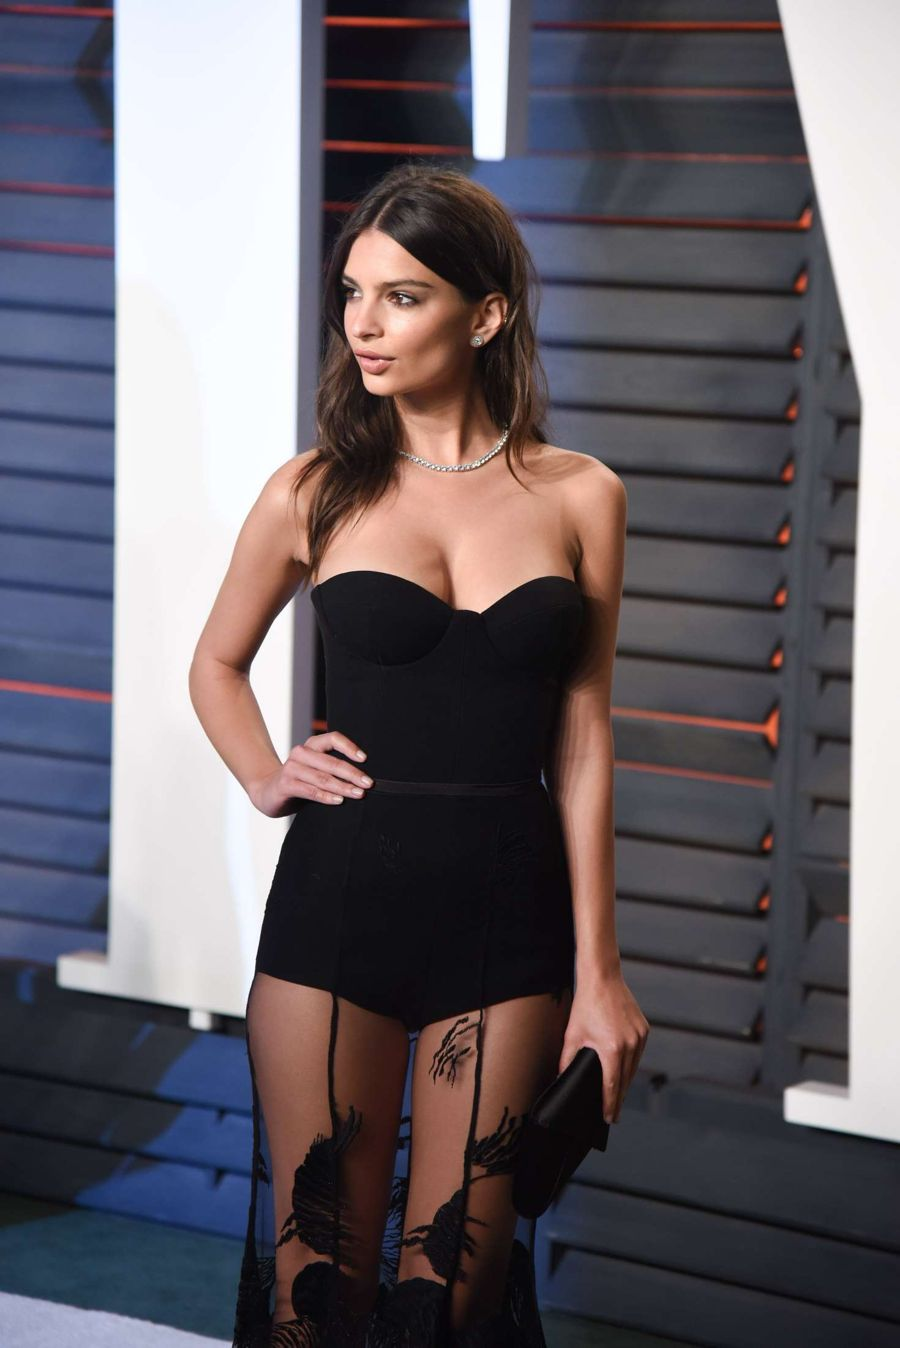 Emily Ratajkowski 2016 Vanity Fair Oscar Party Vt62041 on oscar health nyc